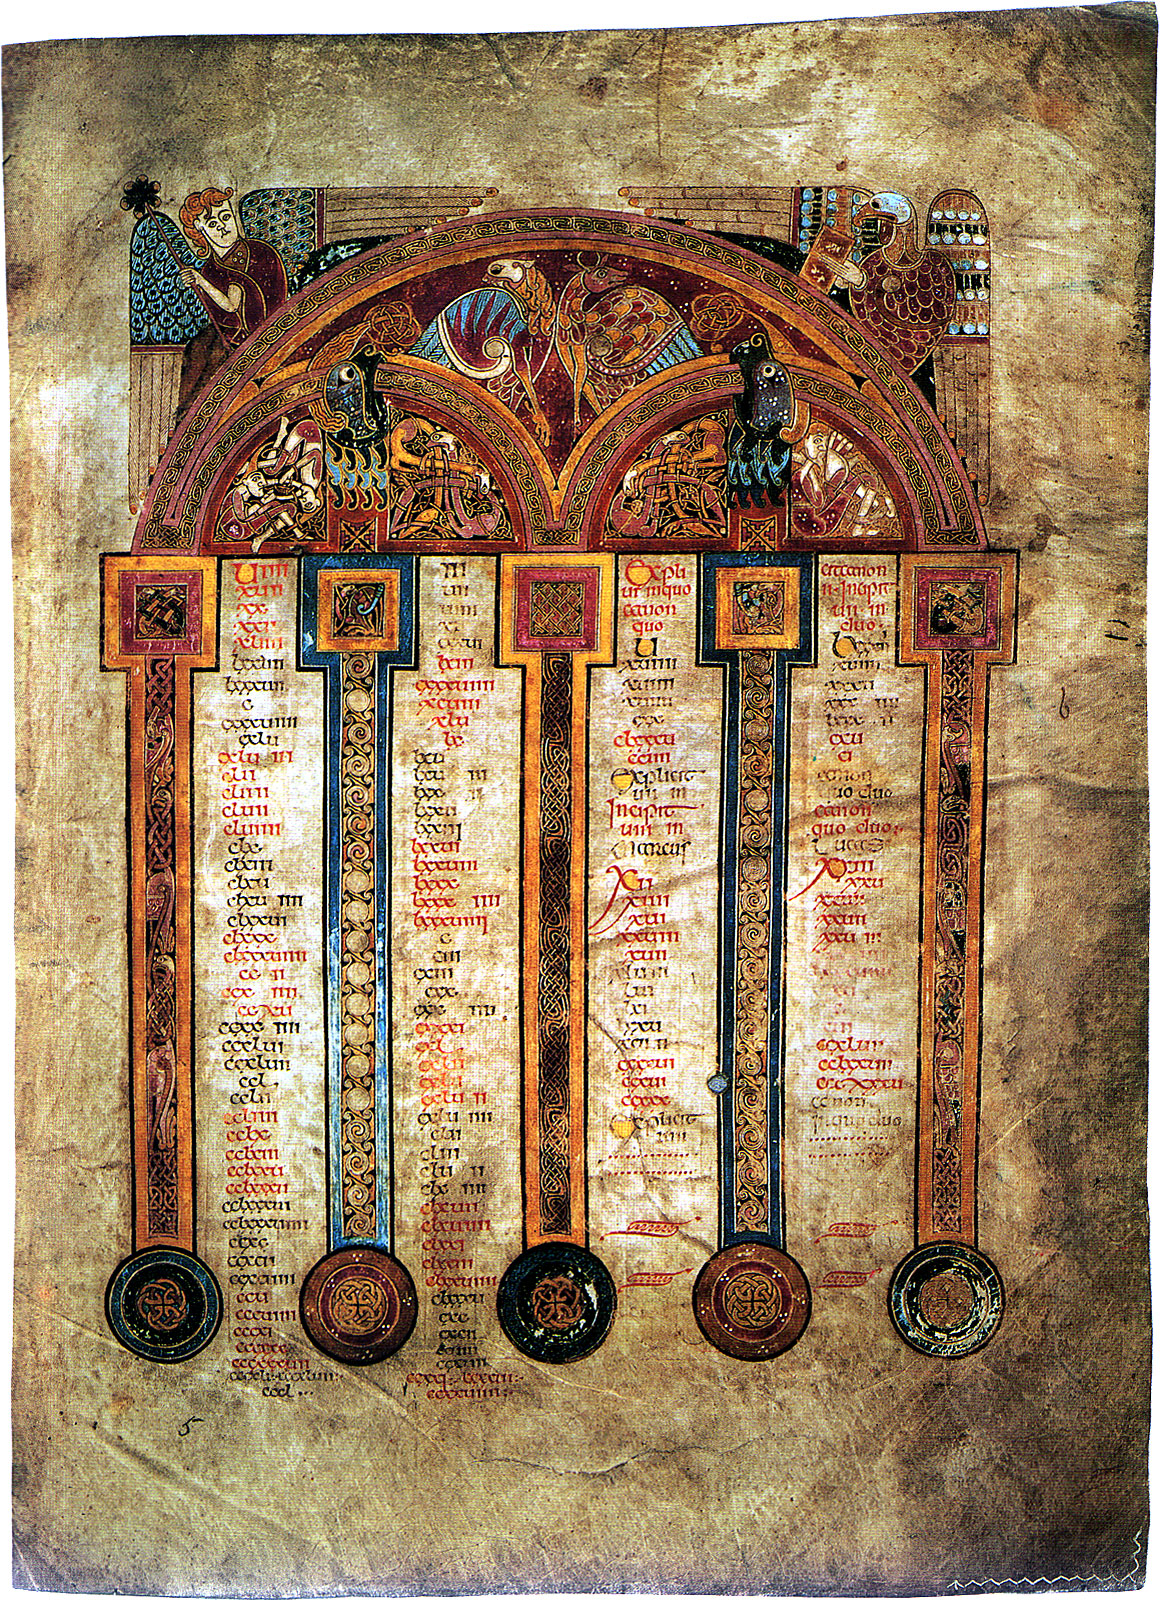 Book Of Kells Folio 129v Symbols Of The Four Evangelists